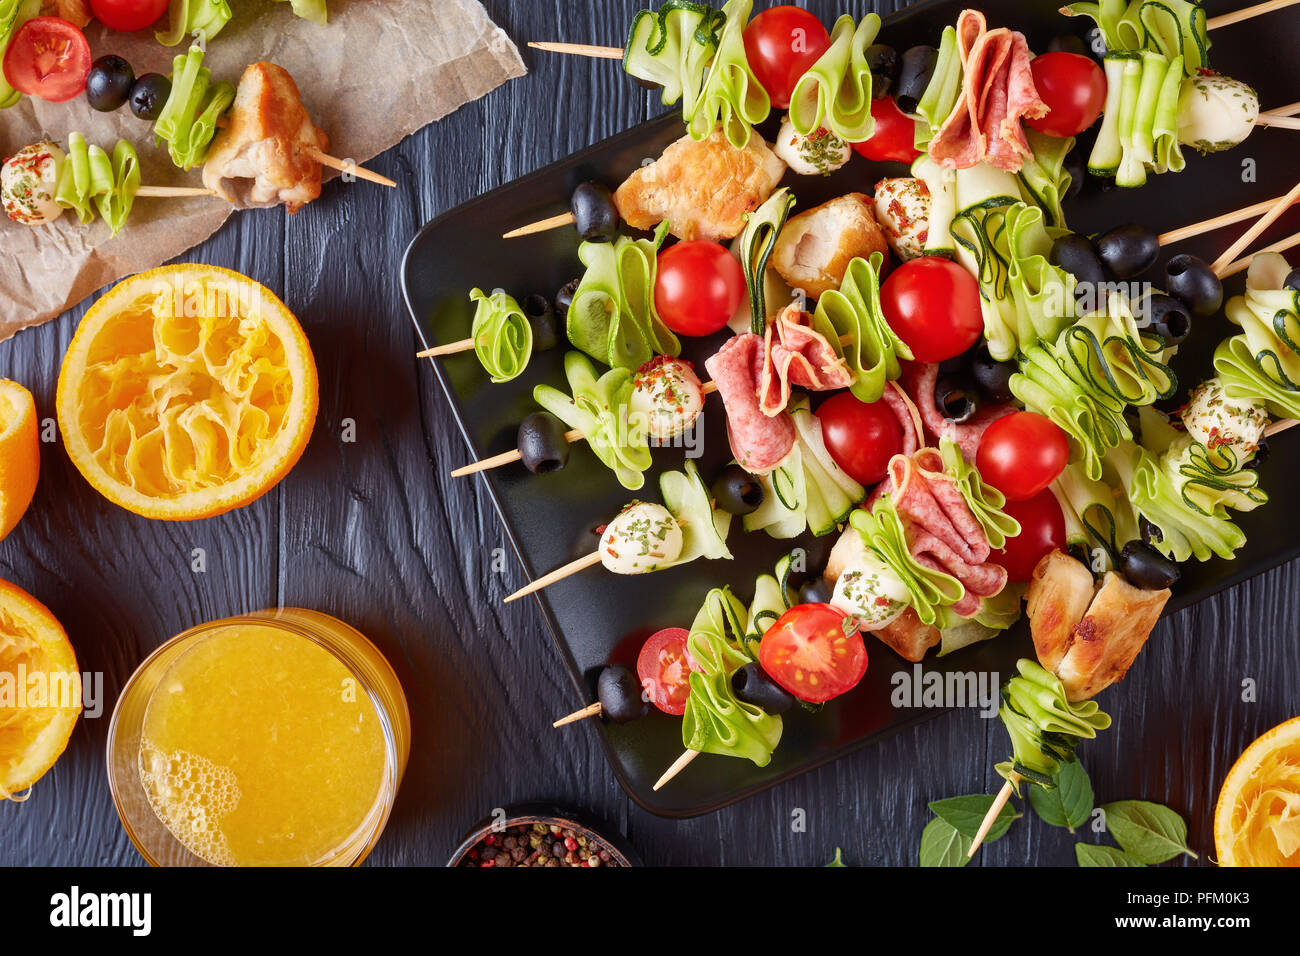 antipasto skewers with chicken meat, zucchini, cherry tomatoes,  mozzarella balls, salami slices, olives on a black plate on a wooden table with orang - Stock Image